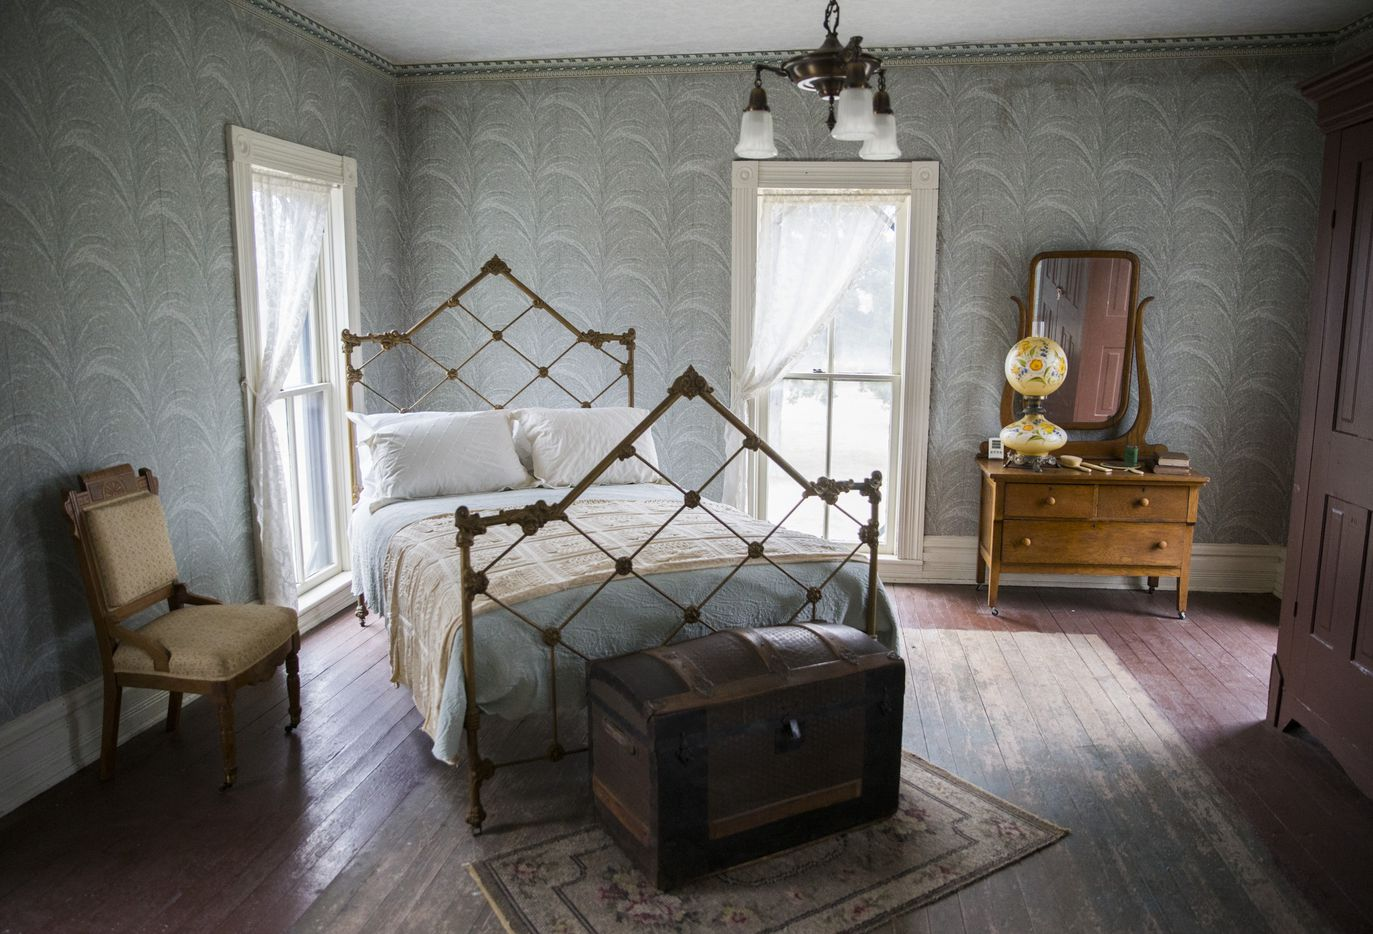 A second-floor bedroom inside the Lawrence house. The parents' bedroom was on the first floor, the girls slept on the second, and the boys on the third.